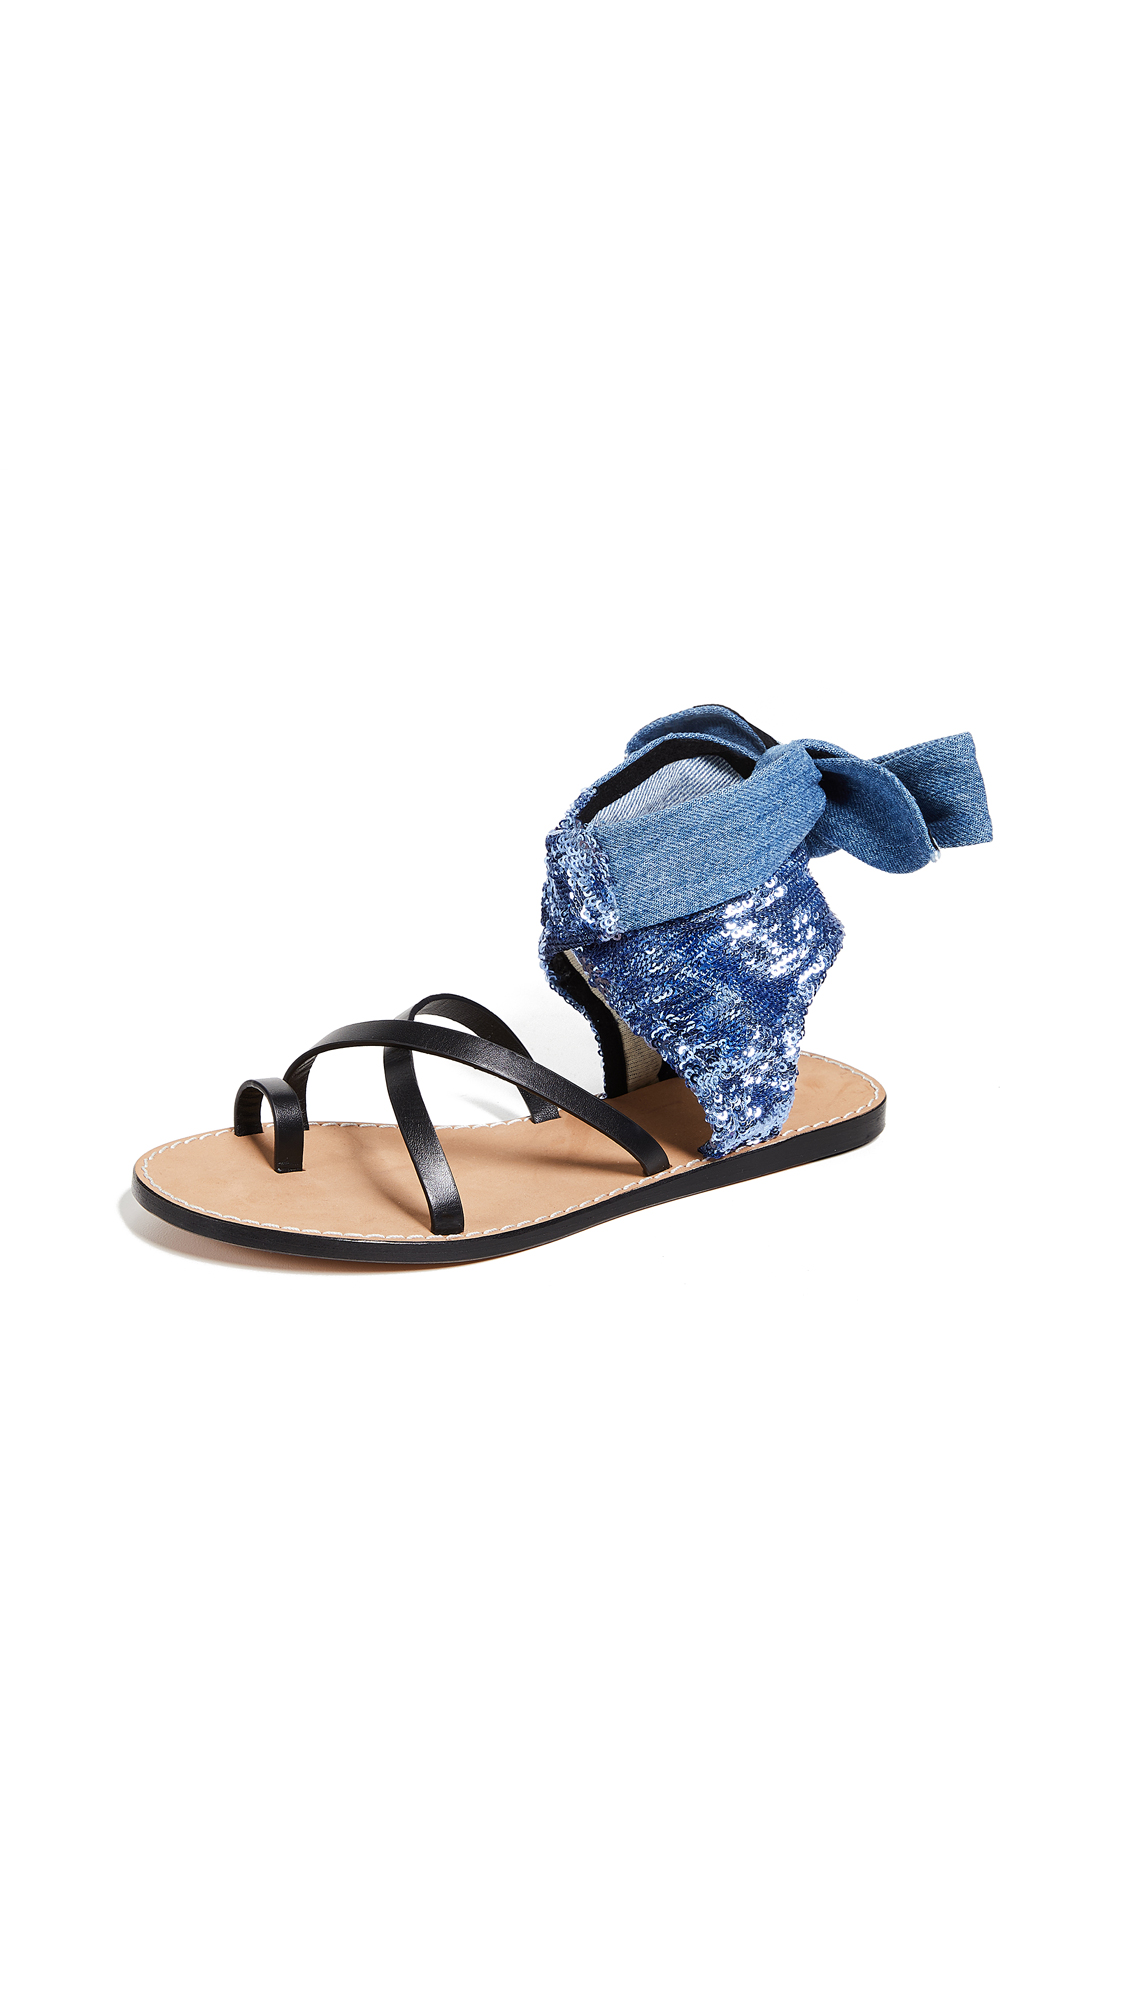 IRO Talita Sequin Wrap Sandals - Blue